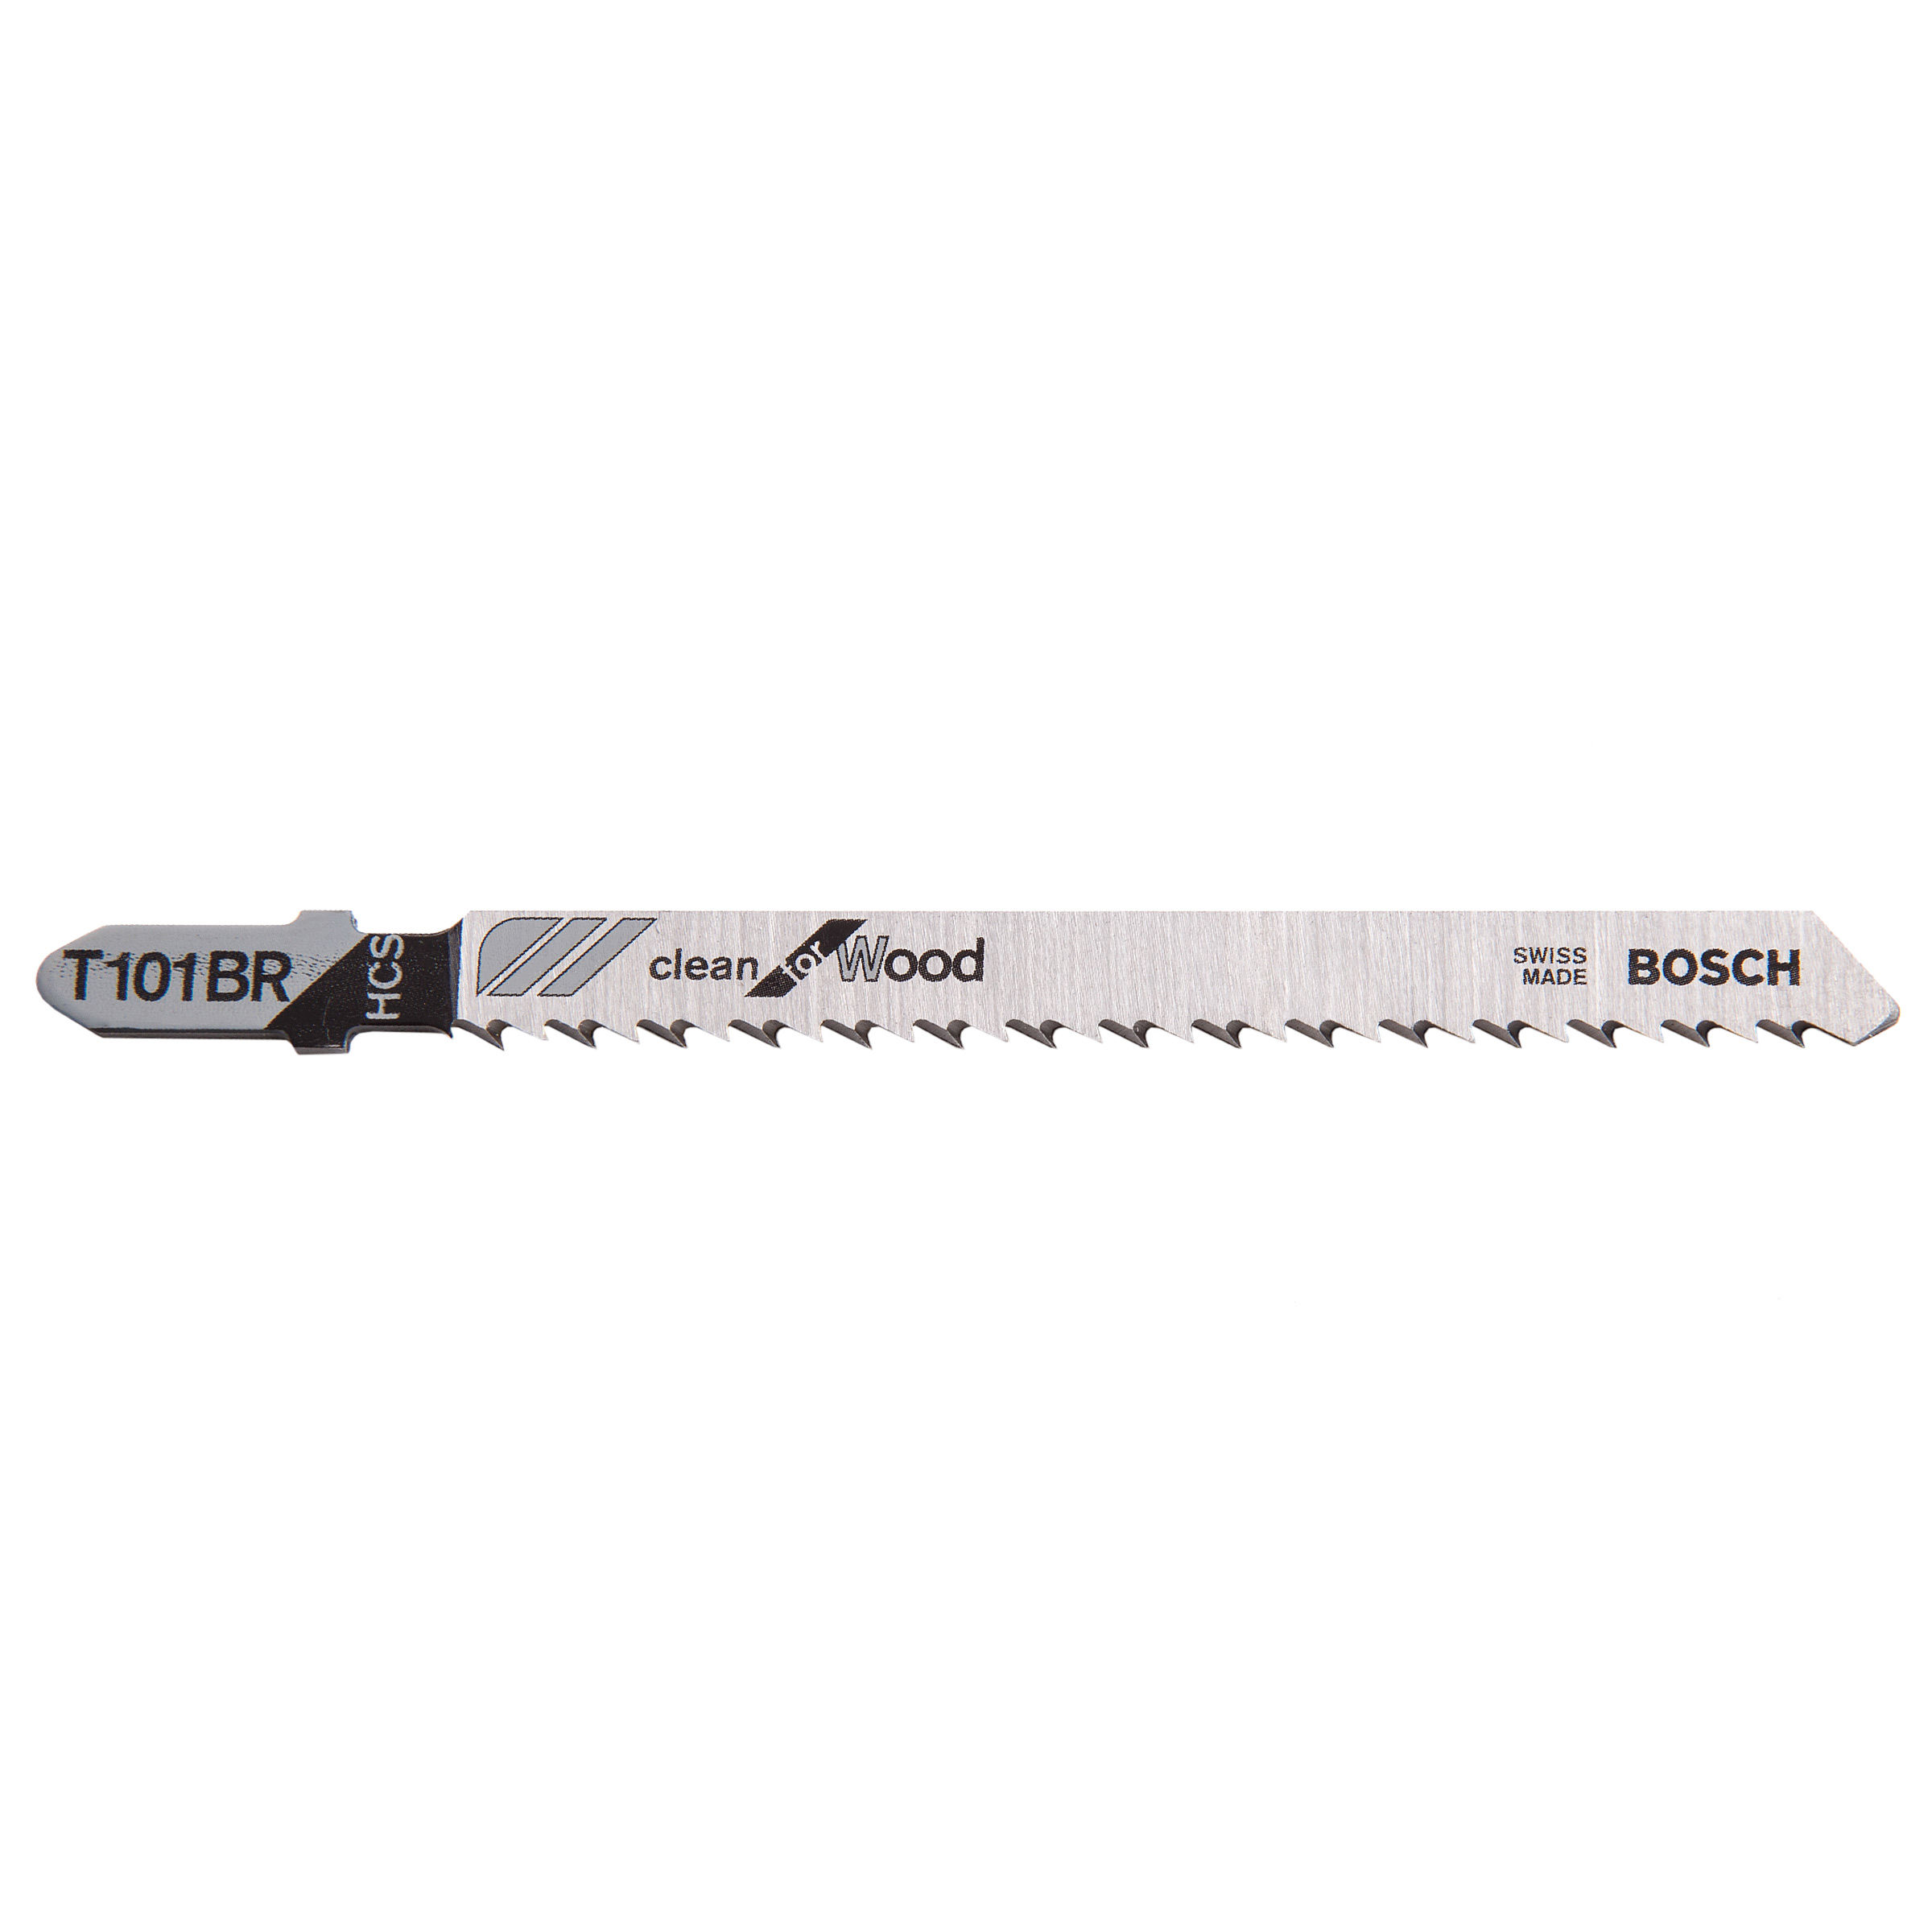 Bosch T101BR Jigsaw Blades HCS Clean for Wood (5 Pack)